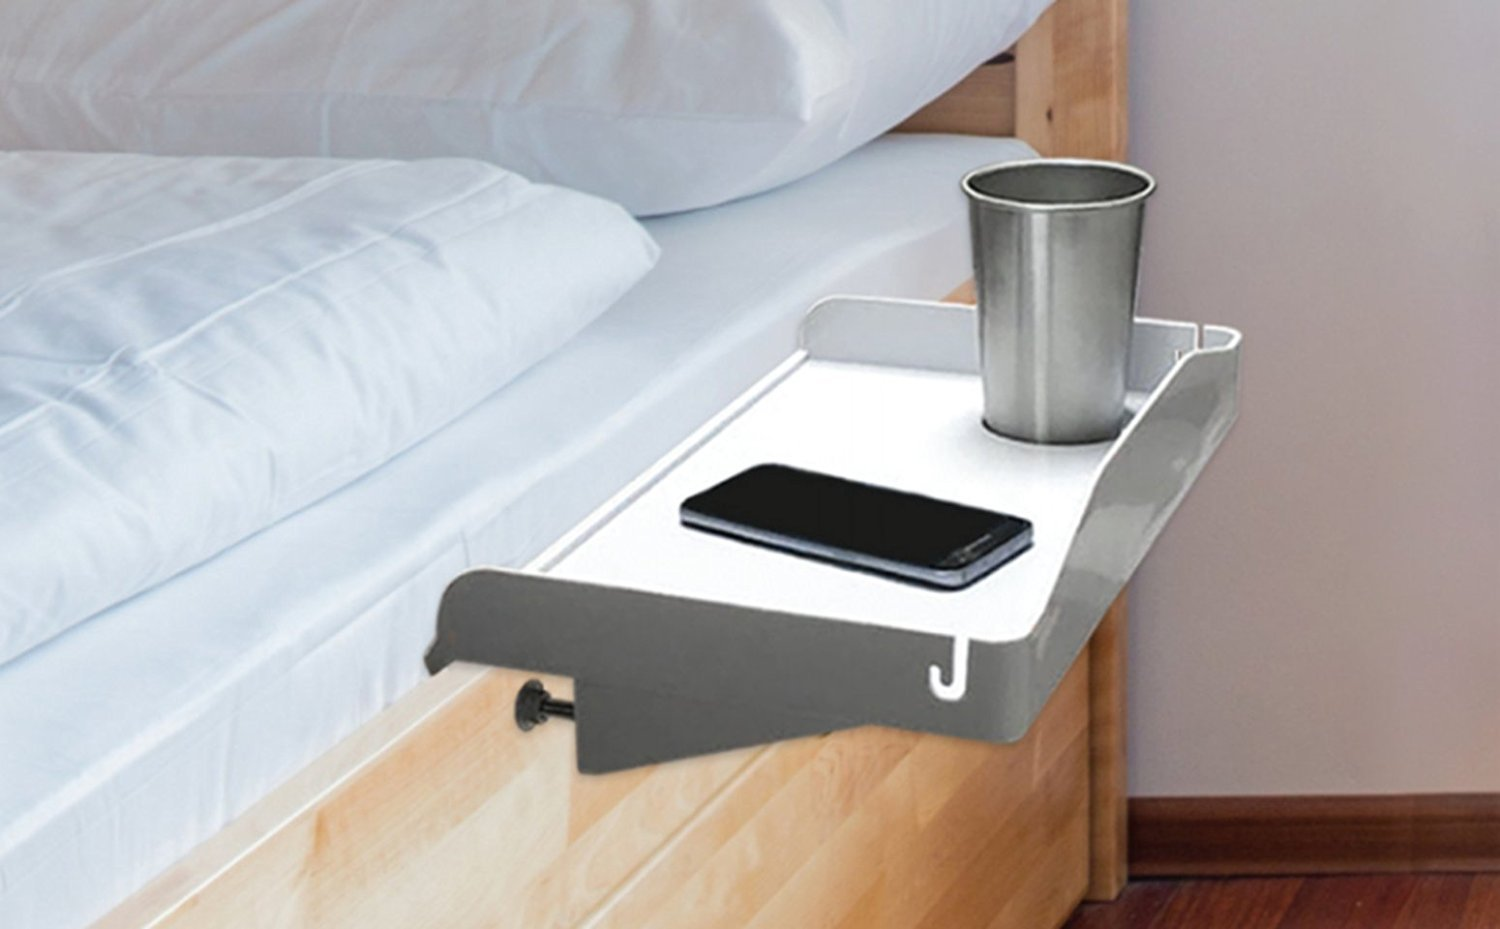 Modern Innovations Bedside Tray with Cup Holder & Cable Cord Insert for Use as Bunk Bed Shelf, Kids Nightstand & Student Dorm Room Nightstand, 15 Inch Plastic Tray (White)